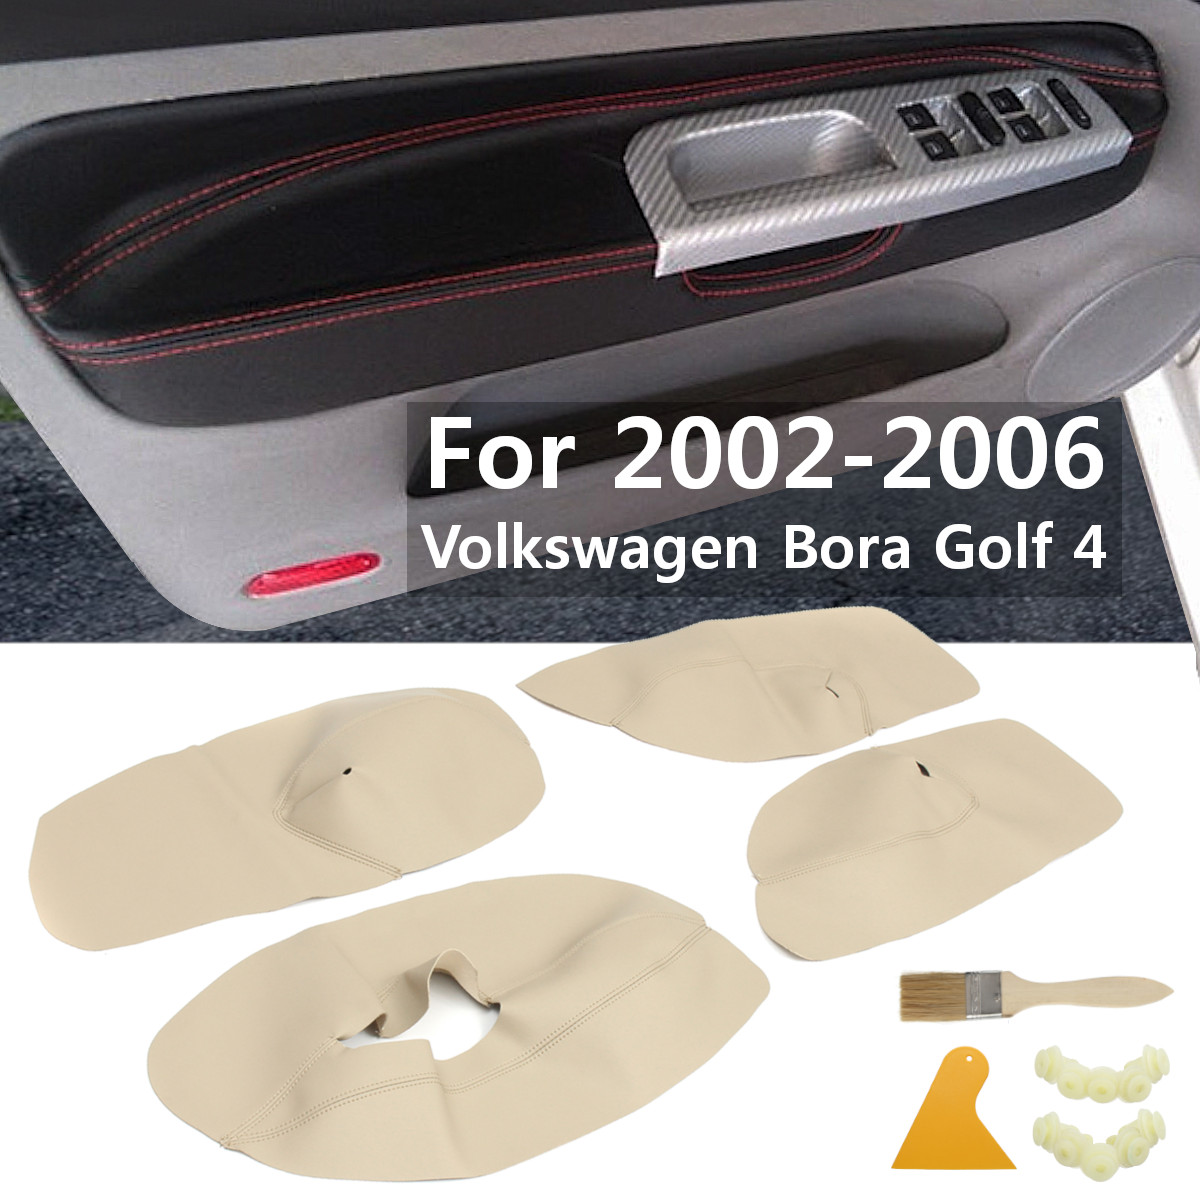 4Pcs Car Interior Door Panel Armrest Arm Rest Microfibre Leather Cover Protective For Volkswagen Bora Golf 4 2002-20064Pcs Car Interior Door Panel Armrest Arm Rest Microfibre Leather Cover Protective For Volkswagen Bora Golf 4 2002-2006